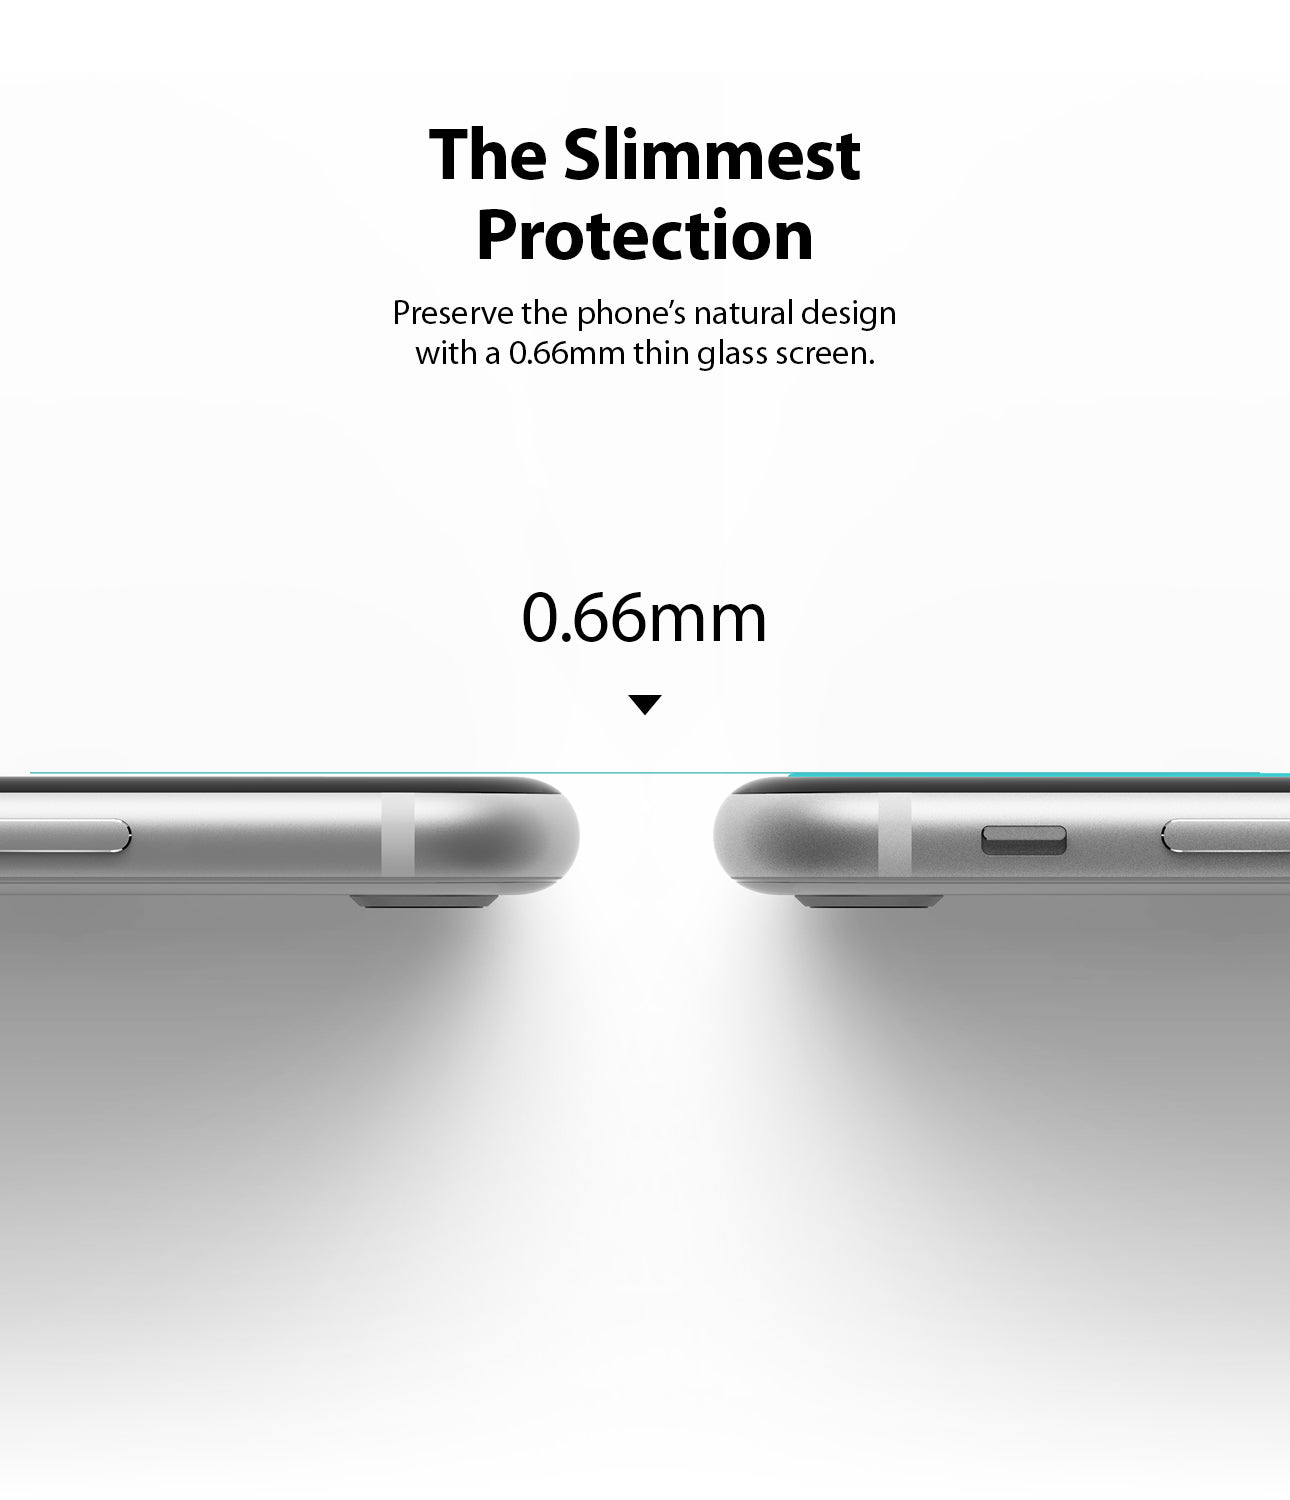 the slimmest protection of  0.66mm